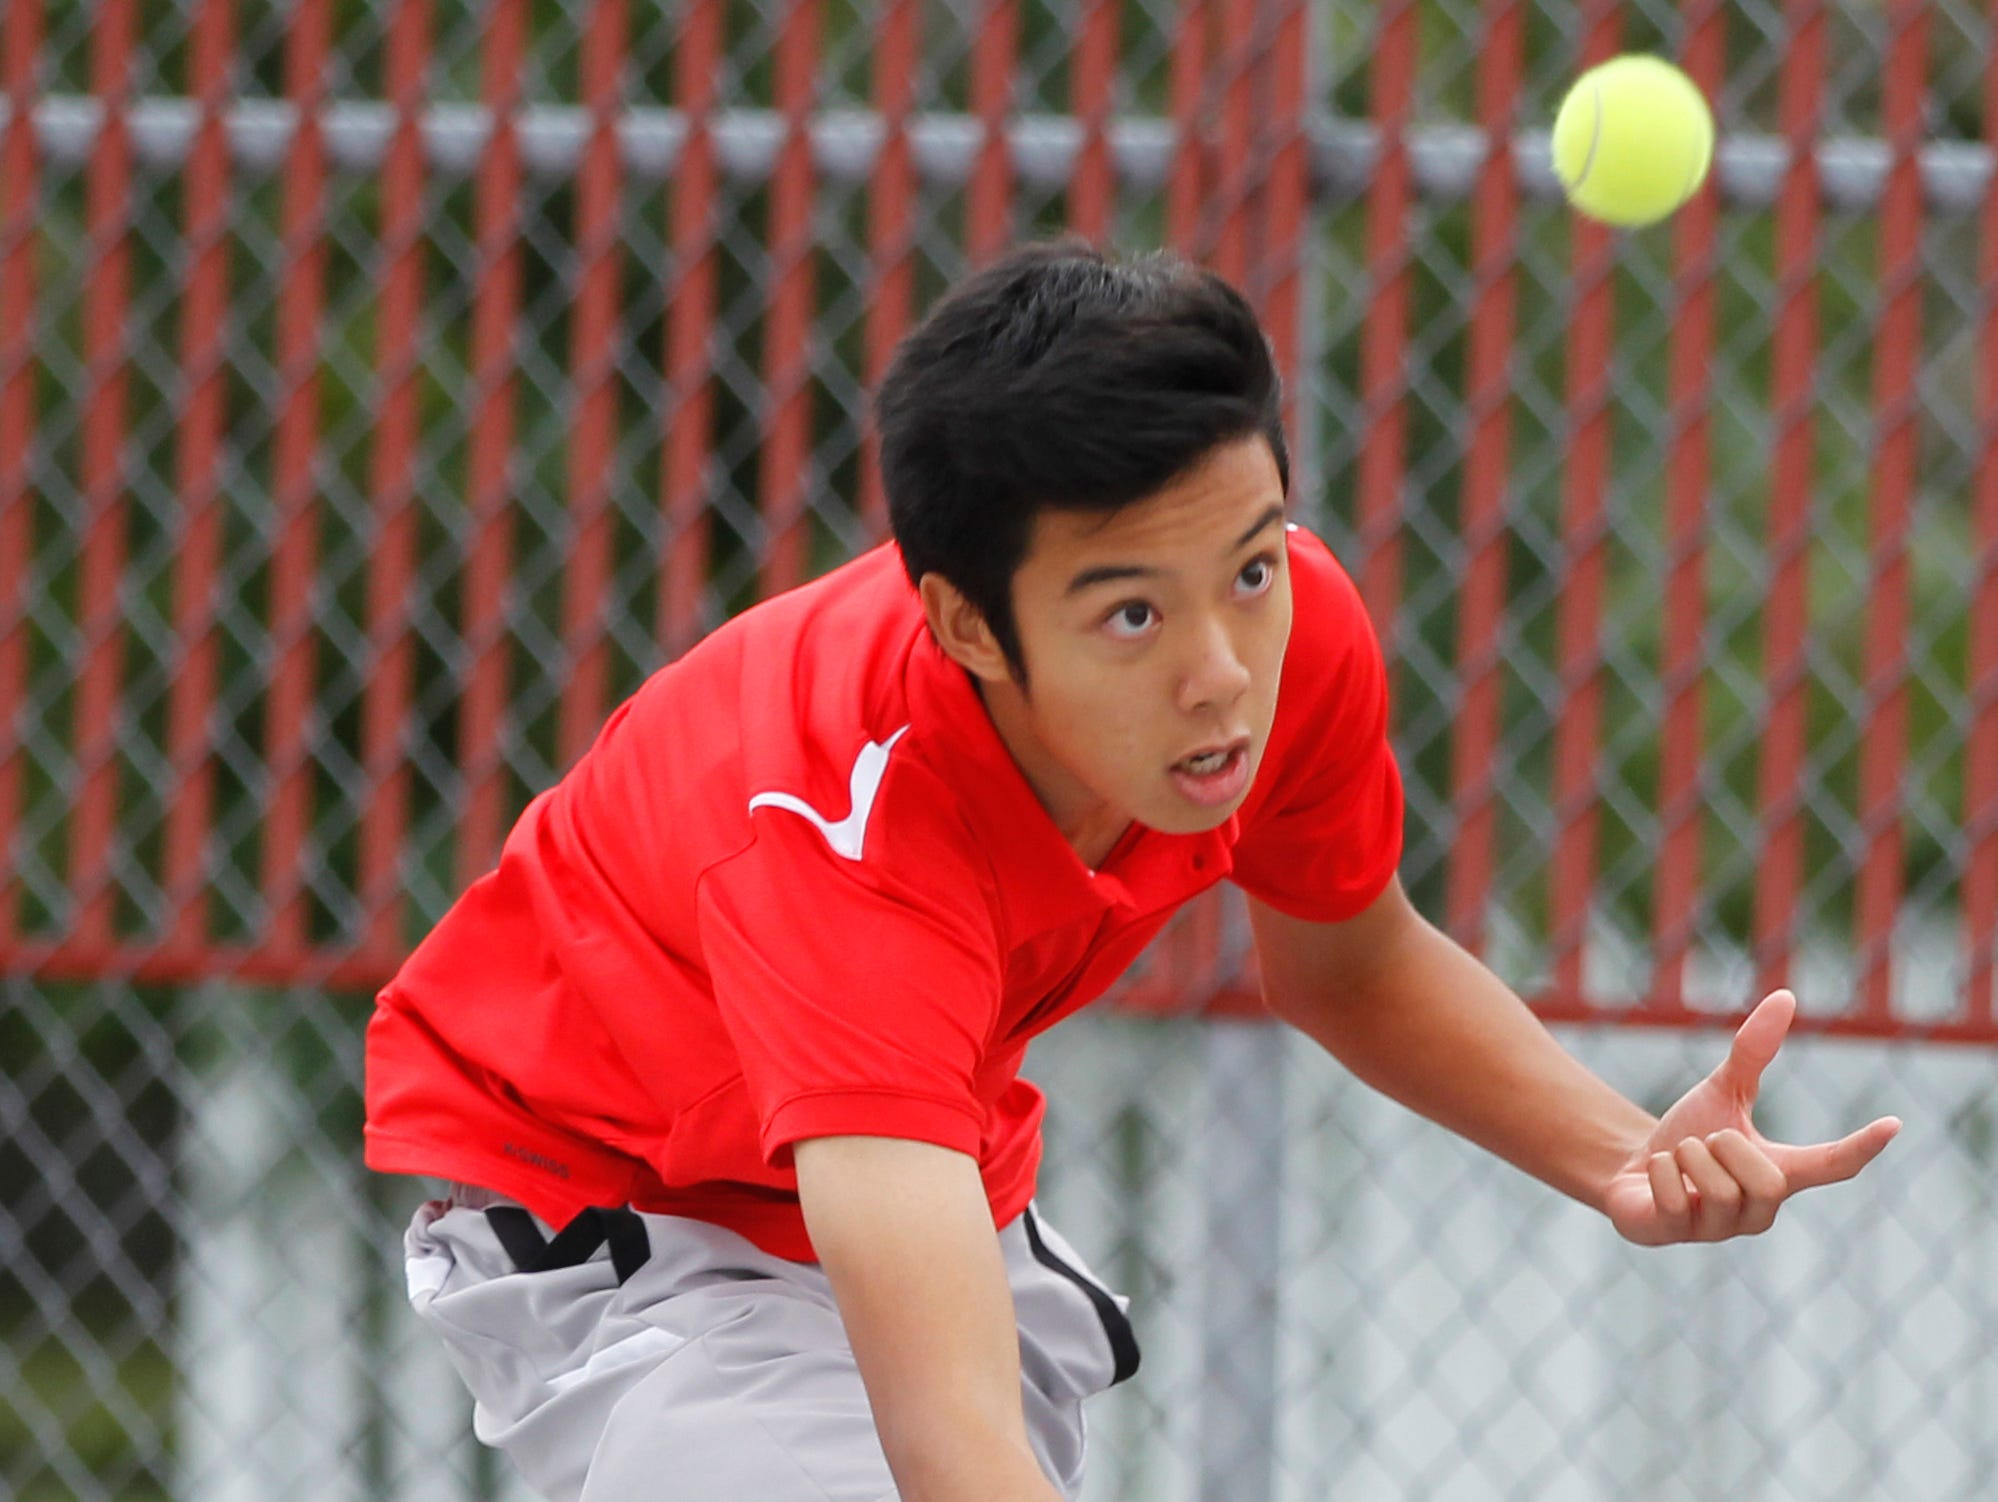 West Lafayette's Danial Watanabe with a return as he and teammate Jatin Sinahal take on Lafayette Jeff's Jacob Isbell and Danny Isbell at No. 2 doubles in the boys tennis sectional championship Friday, October 2, 2015, at Cumberland Courts in West Lafayette.